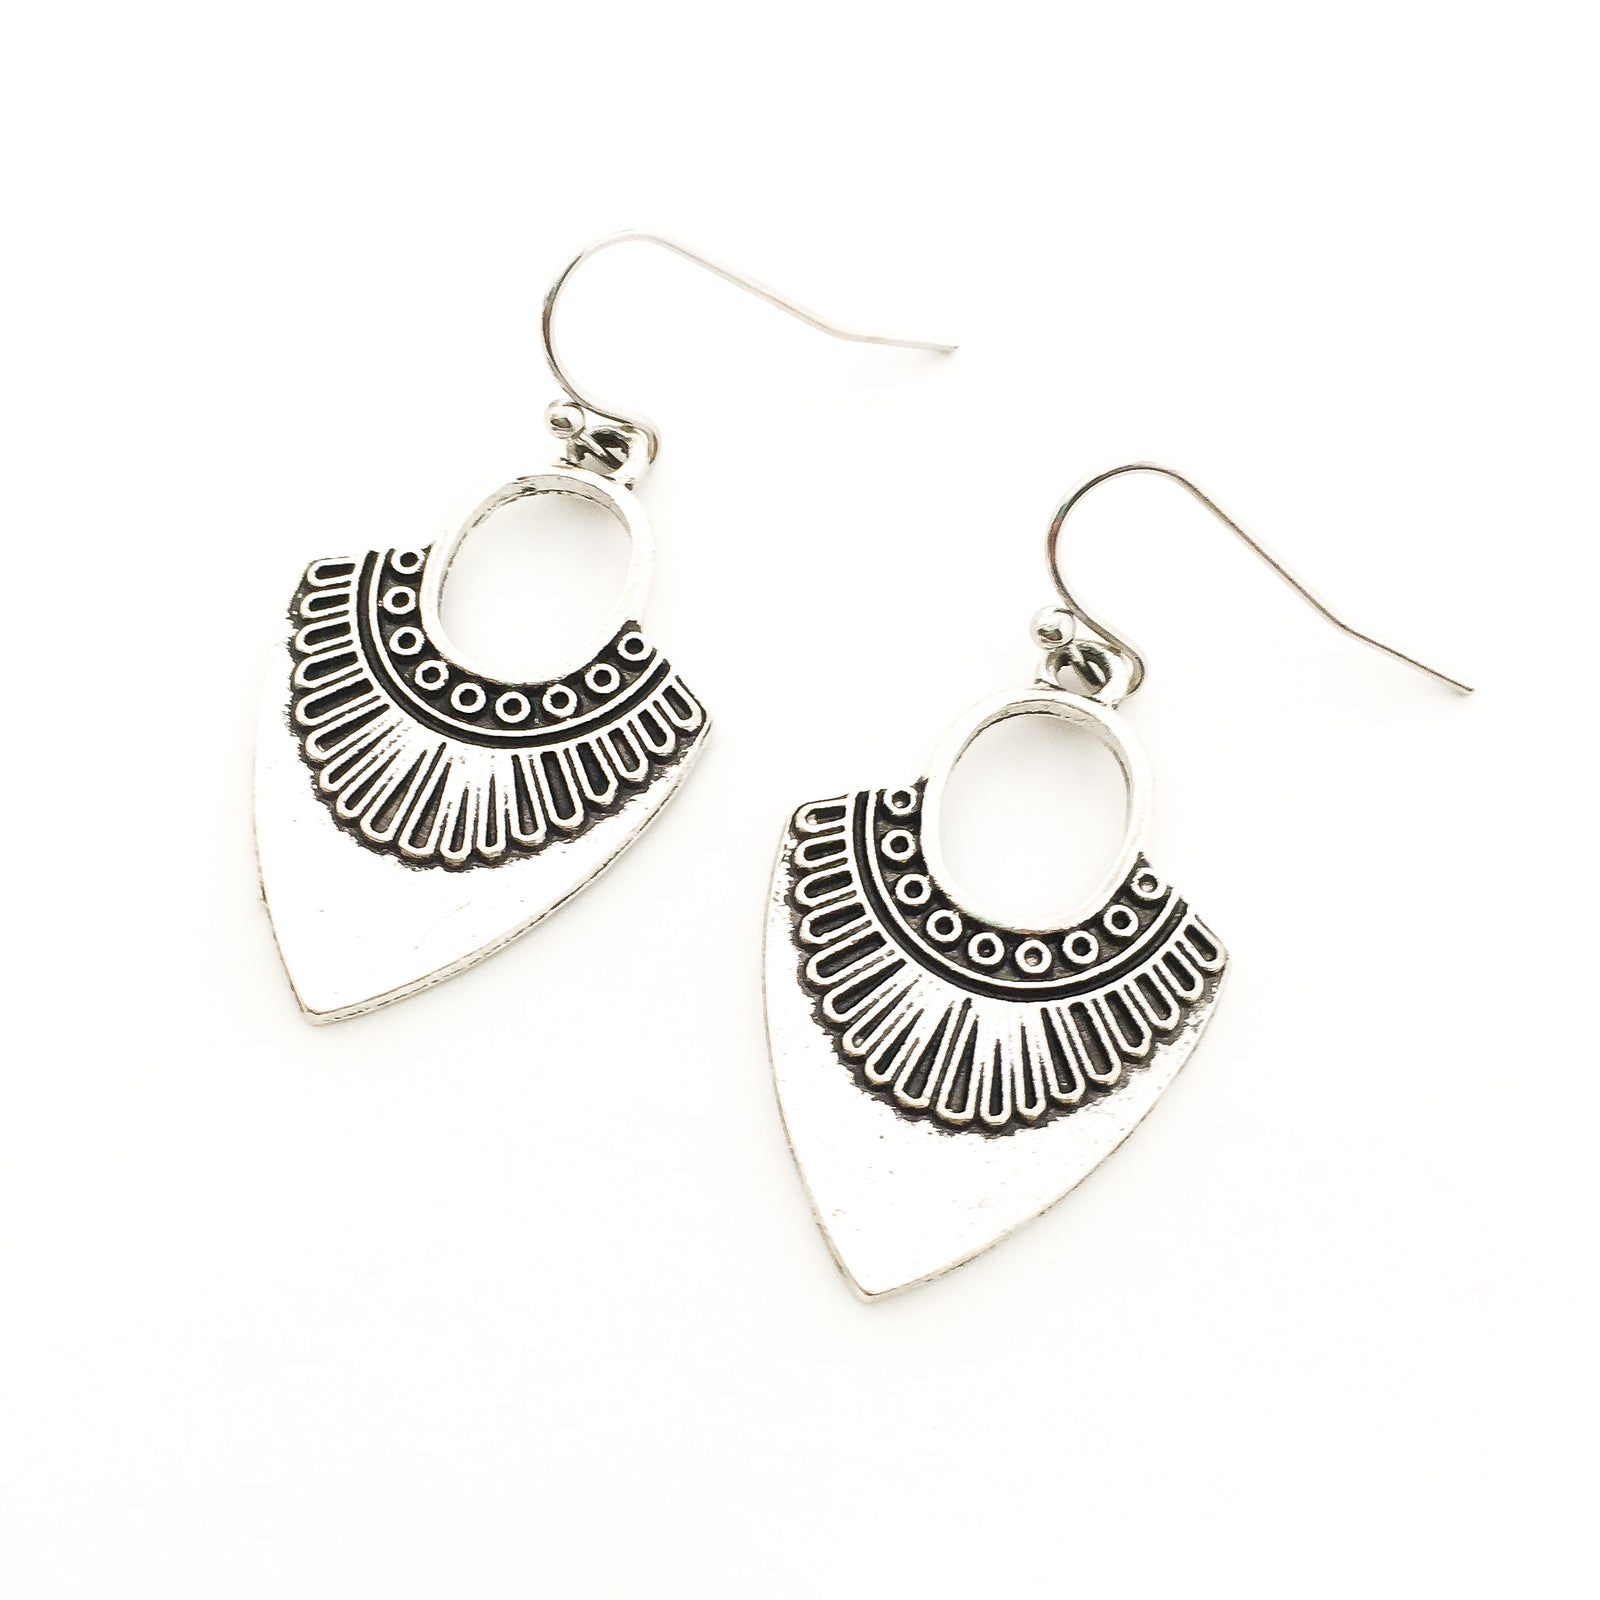 BOHO CHIC SILVER EARRINGS